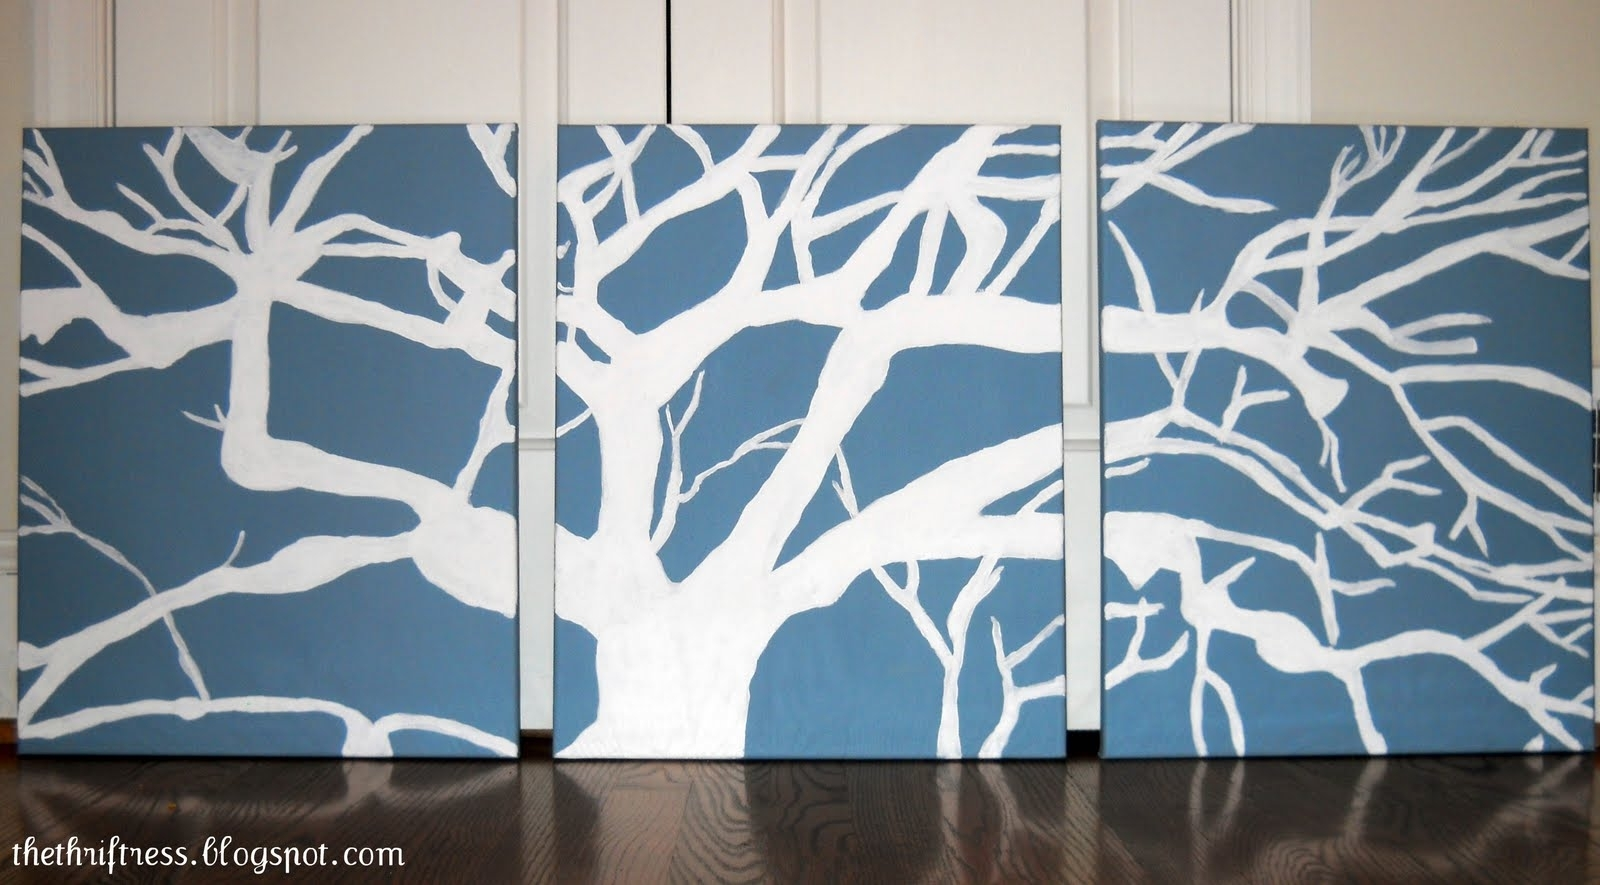 Diy Canvas Wall Art Ideas Stencils Paint – Tierra Este | #28929 In Current Diy Fabric Canvas Wall Art (View 2 of 15)